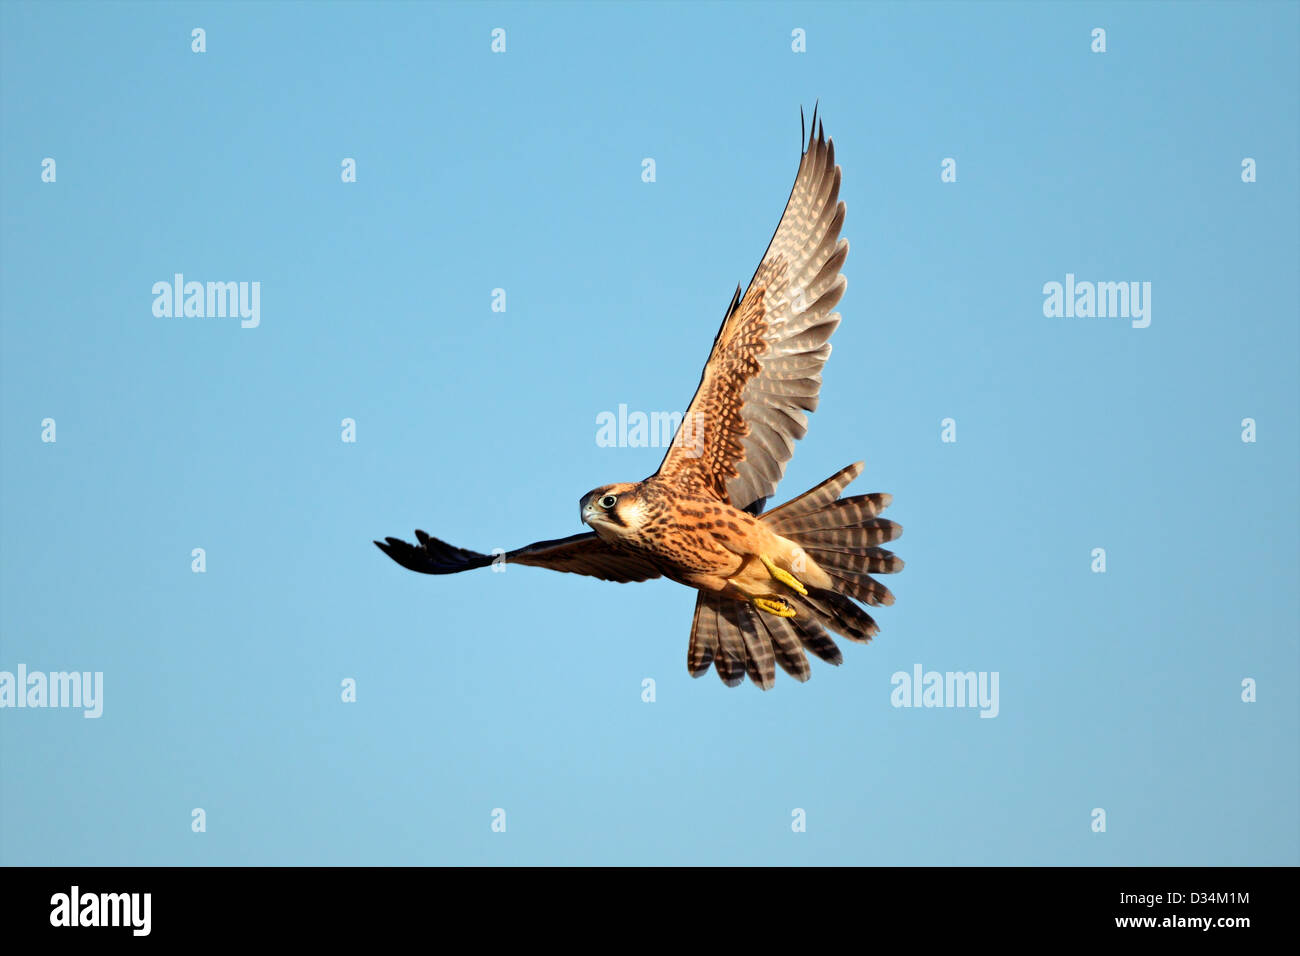 Lanner falcon (Falco biarmicus) in flight against a blue sky, South Africa - Stock Image